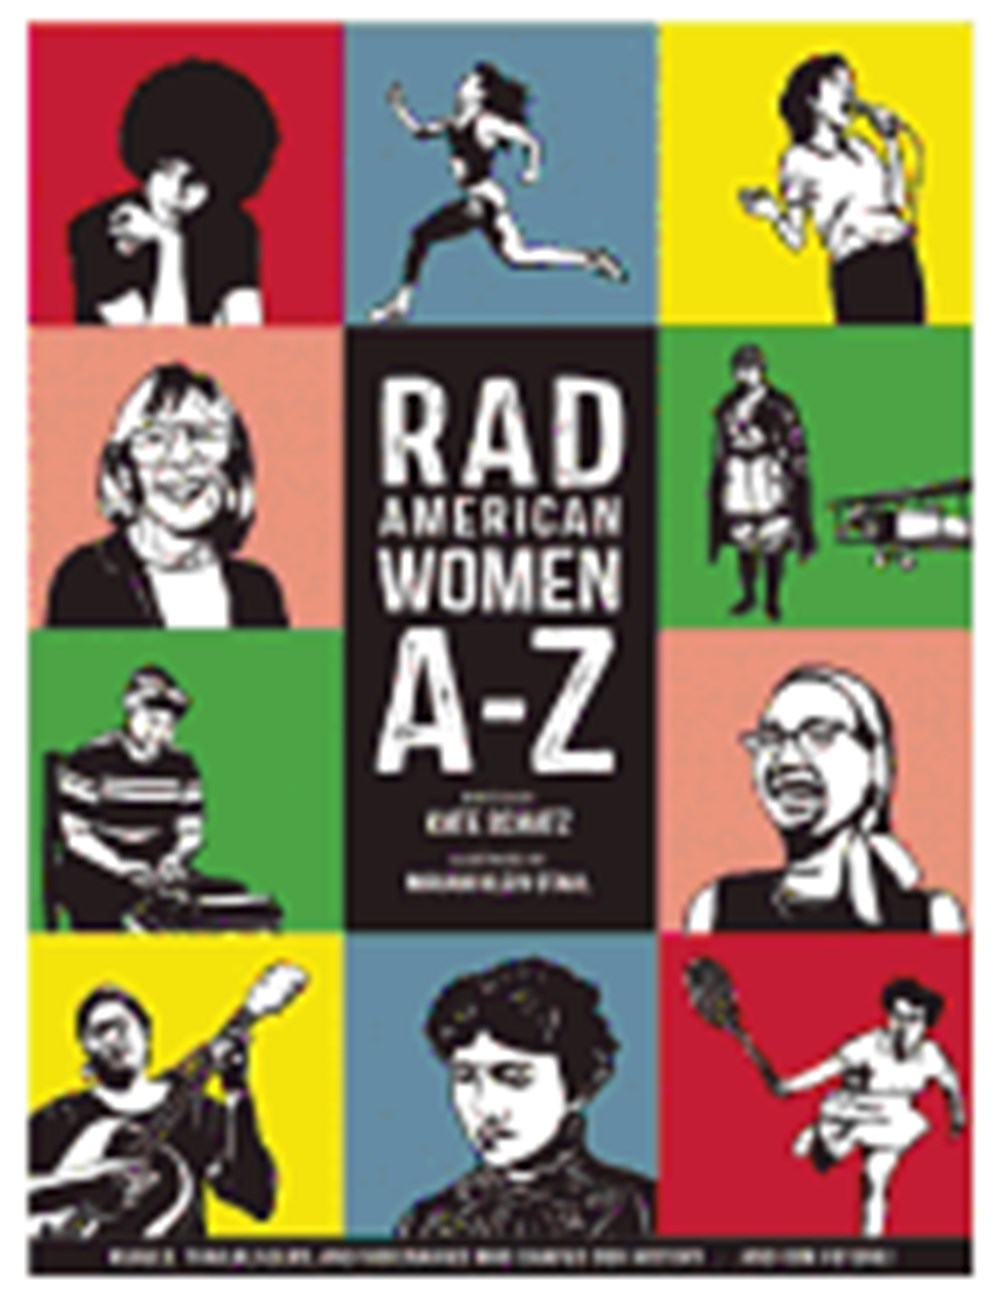 Rad American Women A-Z Rebels, Trailblazers, and Visionaries Who Shaped Our History . . . and Our Fu